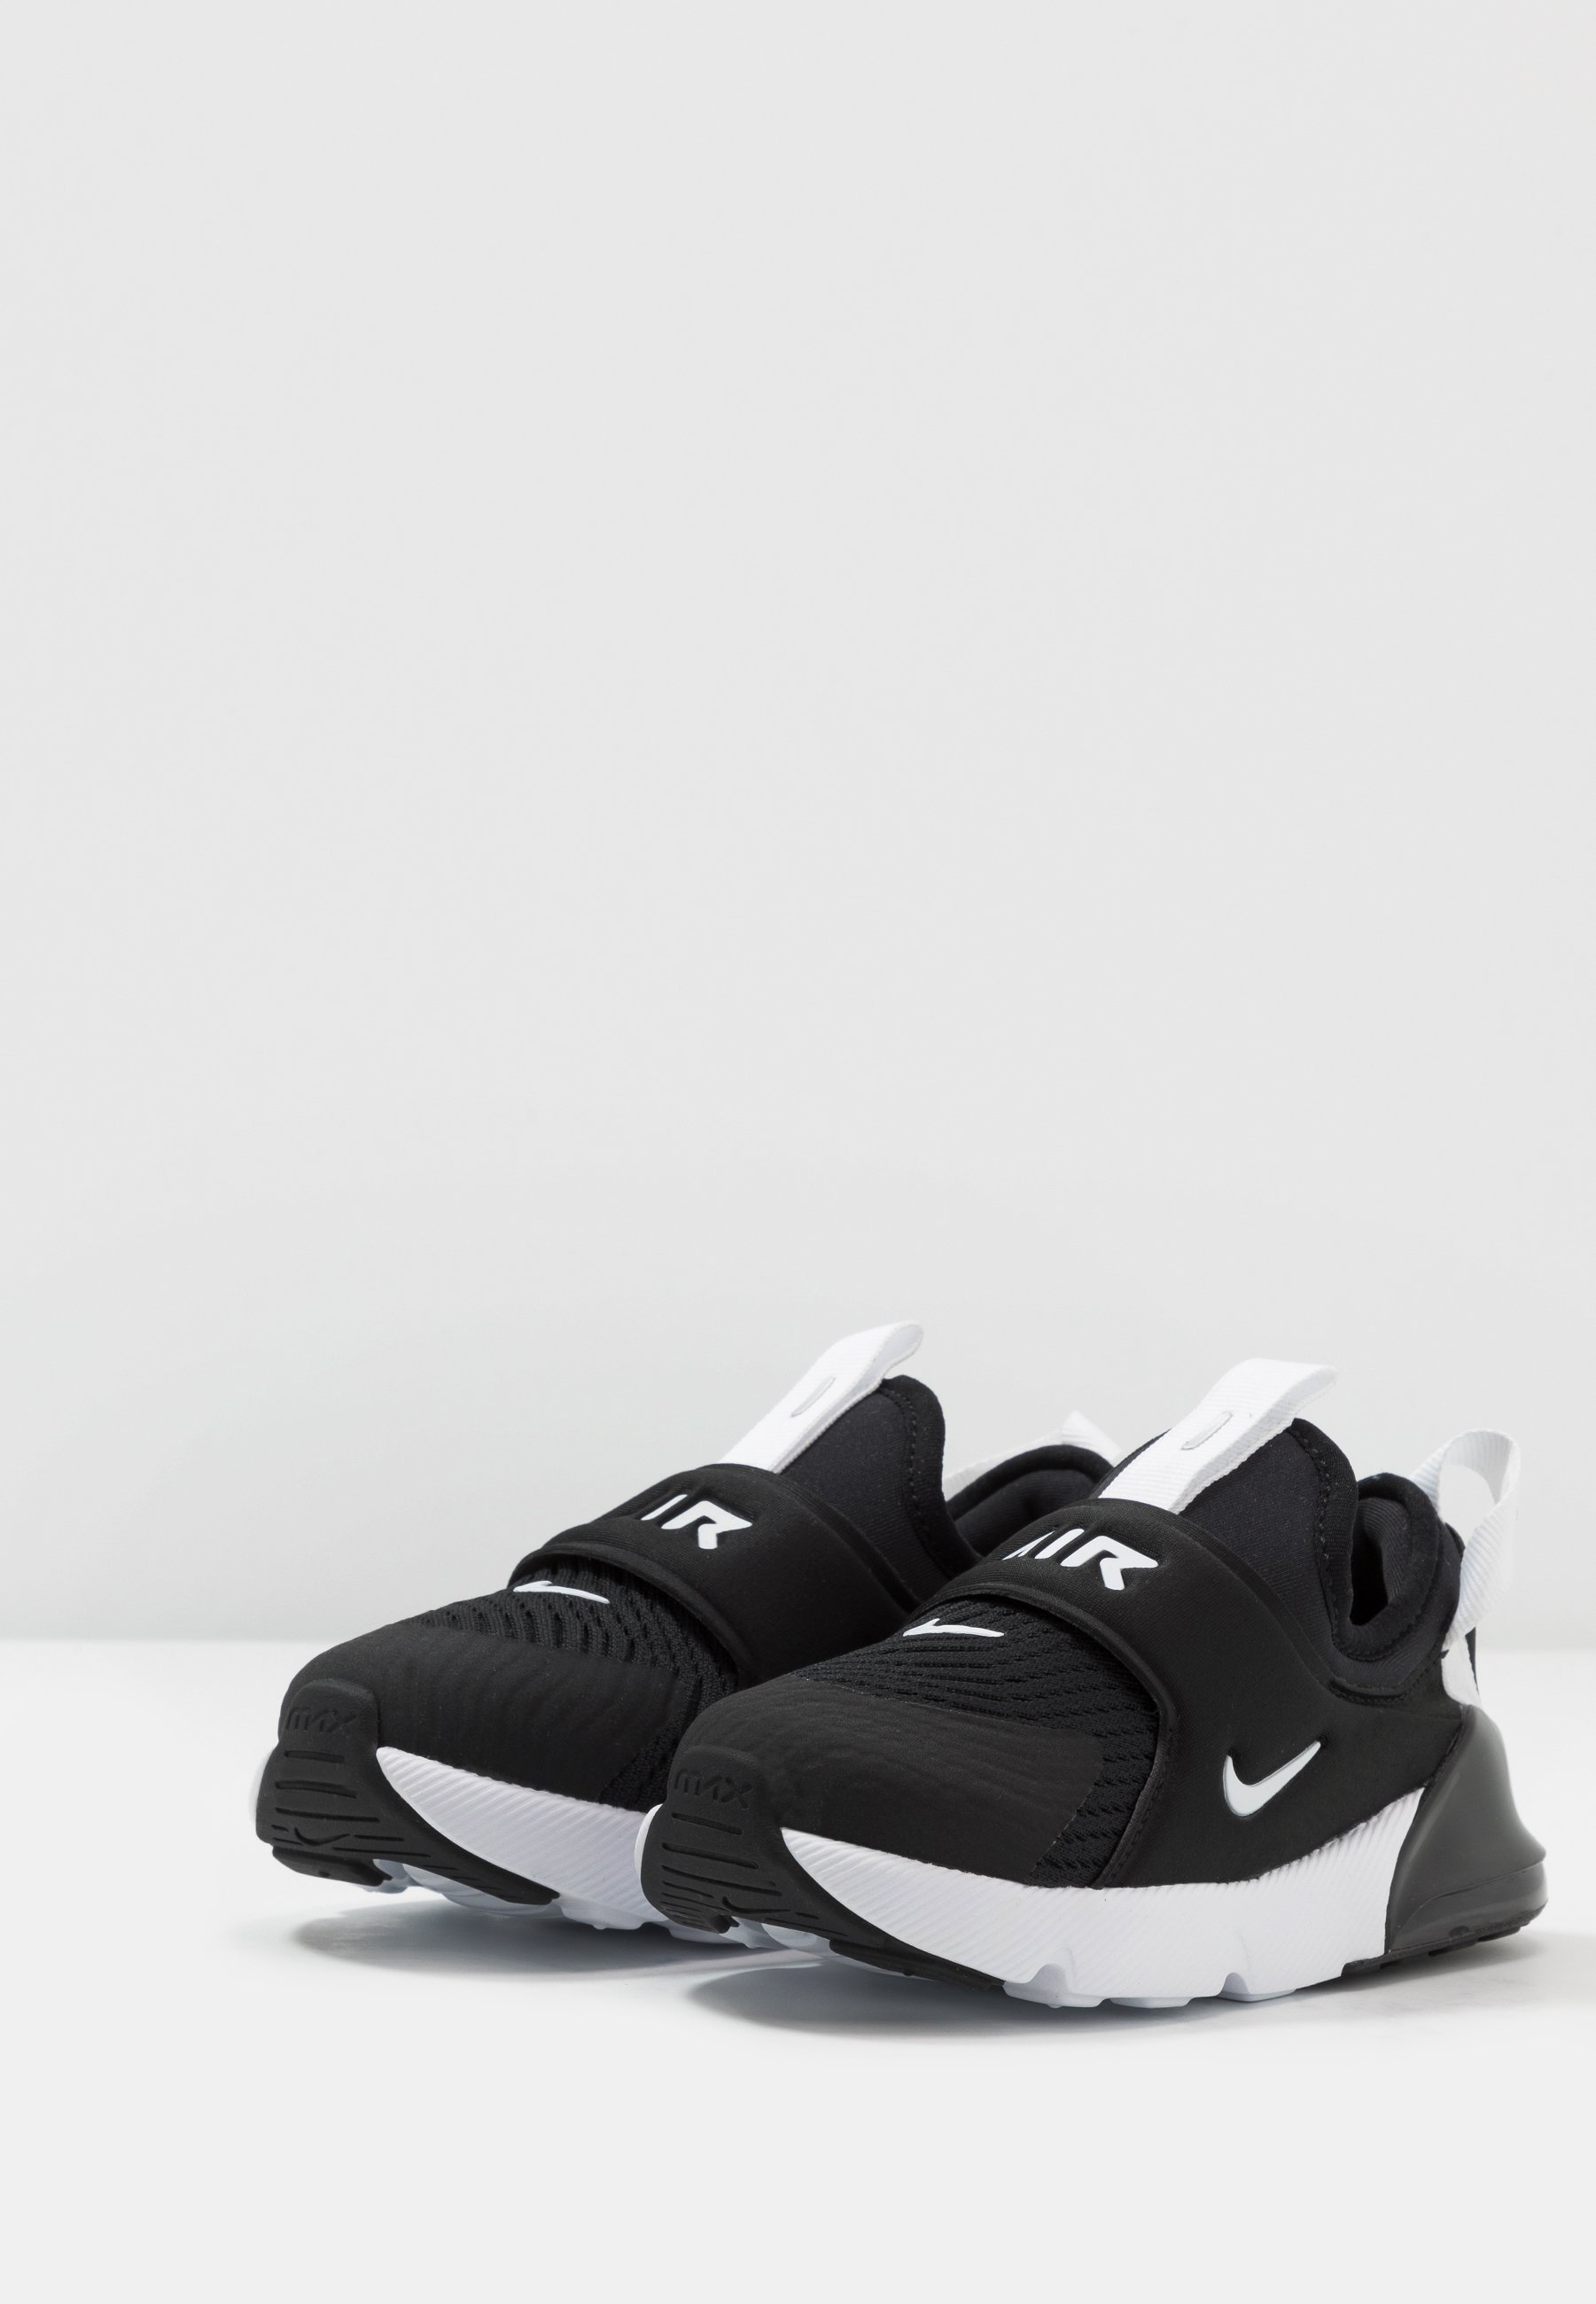 Nike Air Max 270 Extreme Baby and Toddler Shoe White .